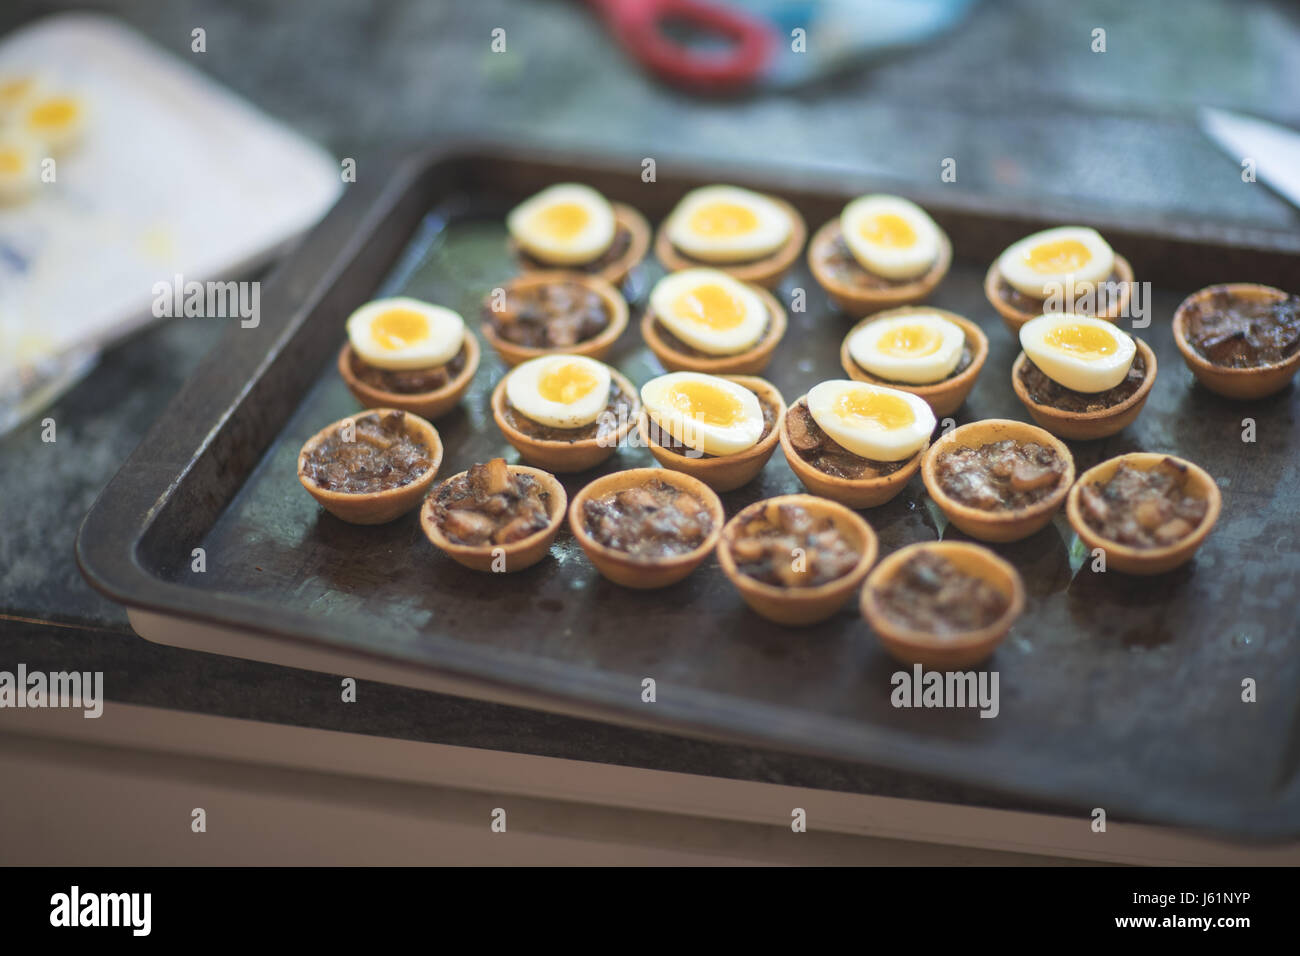 Wedding Reception Canapés: Quail's Eggs with Mince Meet in Pastry shells - Stock Image